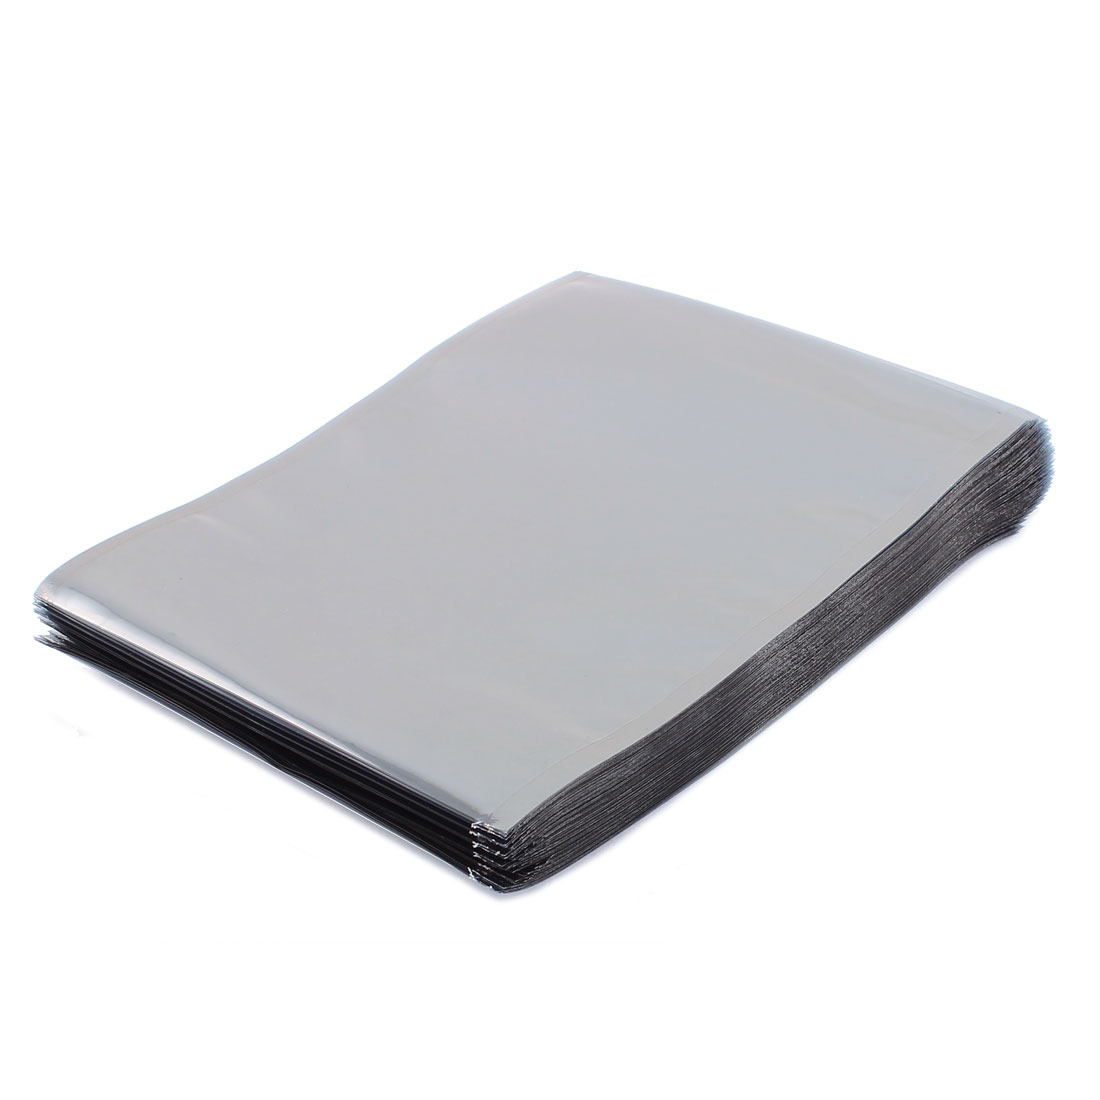 100 Pcs 120mm x 160mm Silver Tone Flat Open Top Anti Static Bag For Electronics